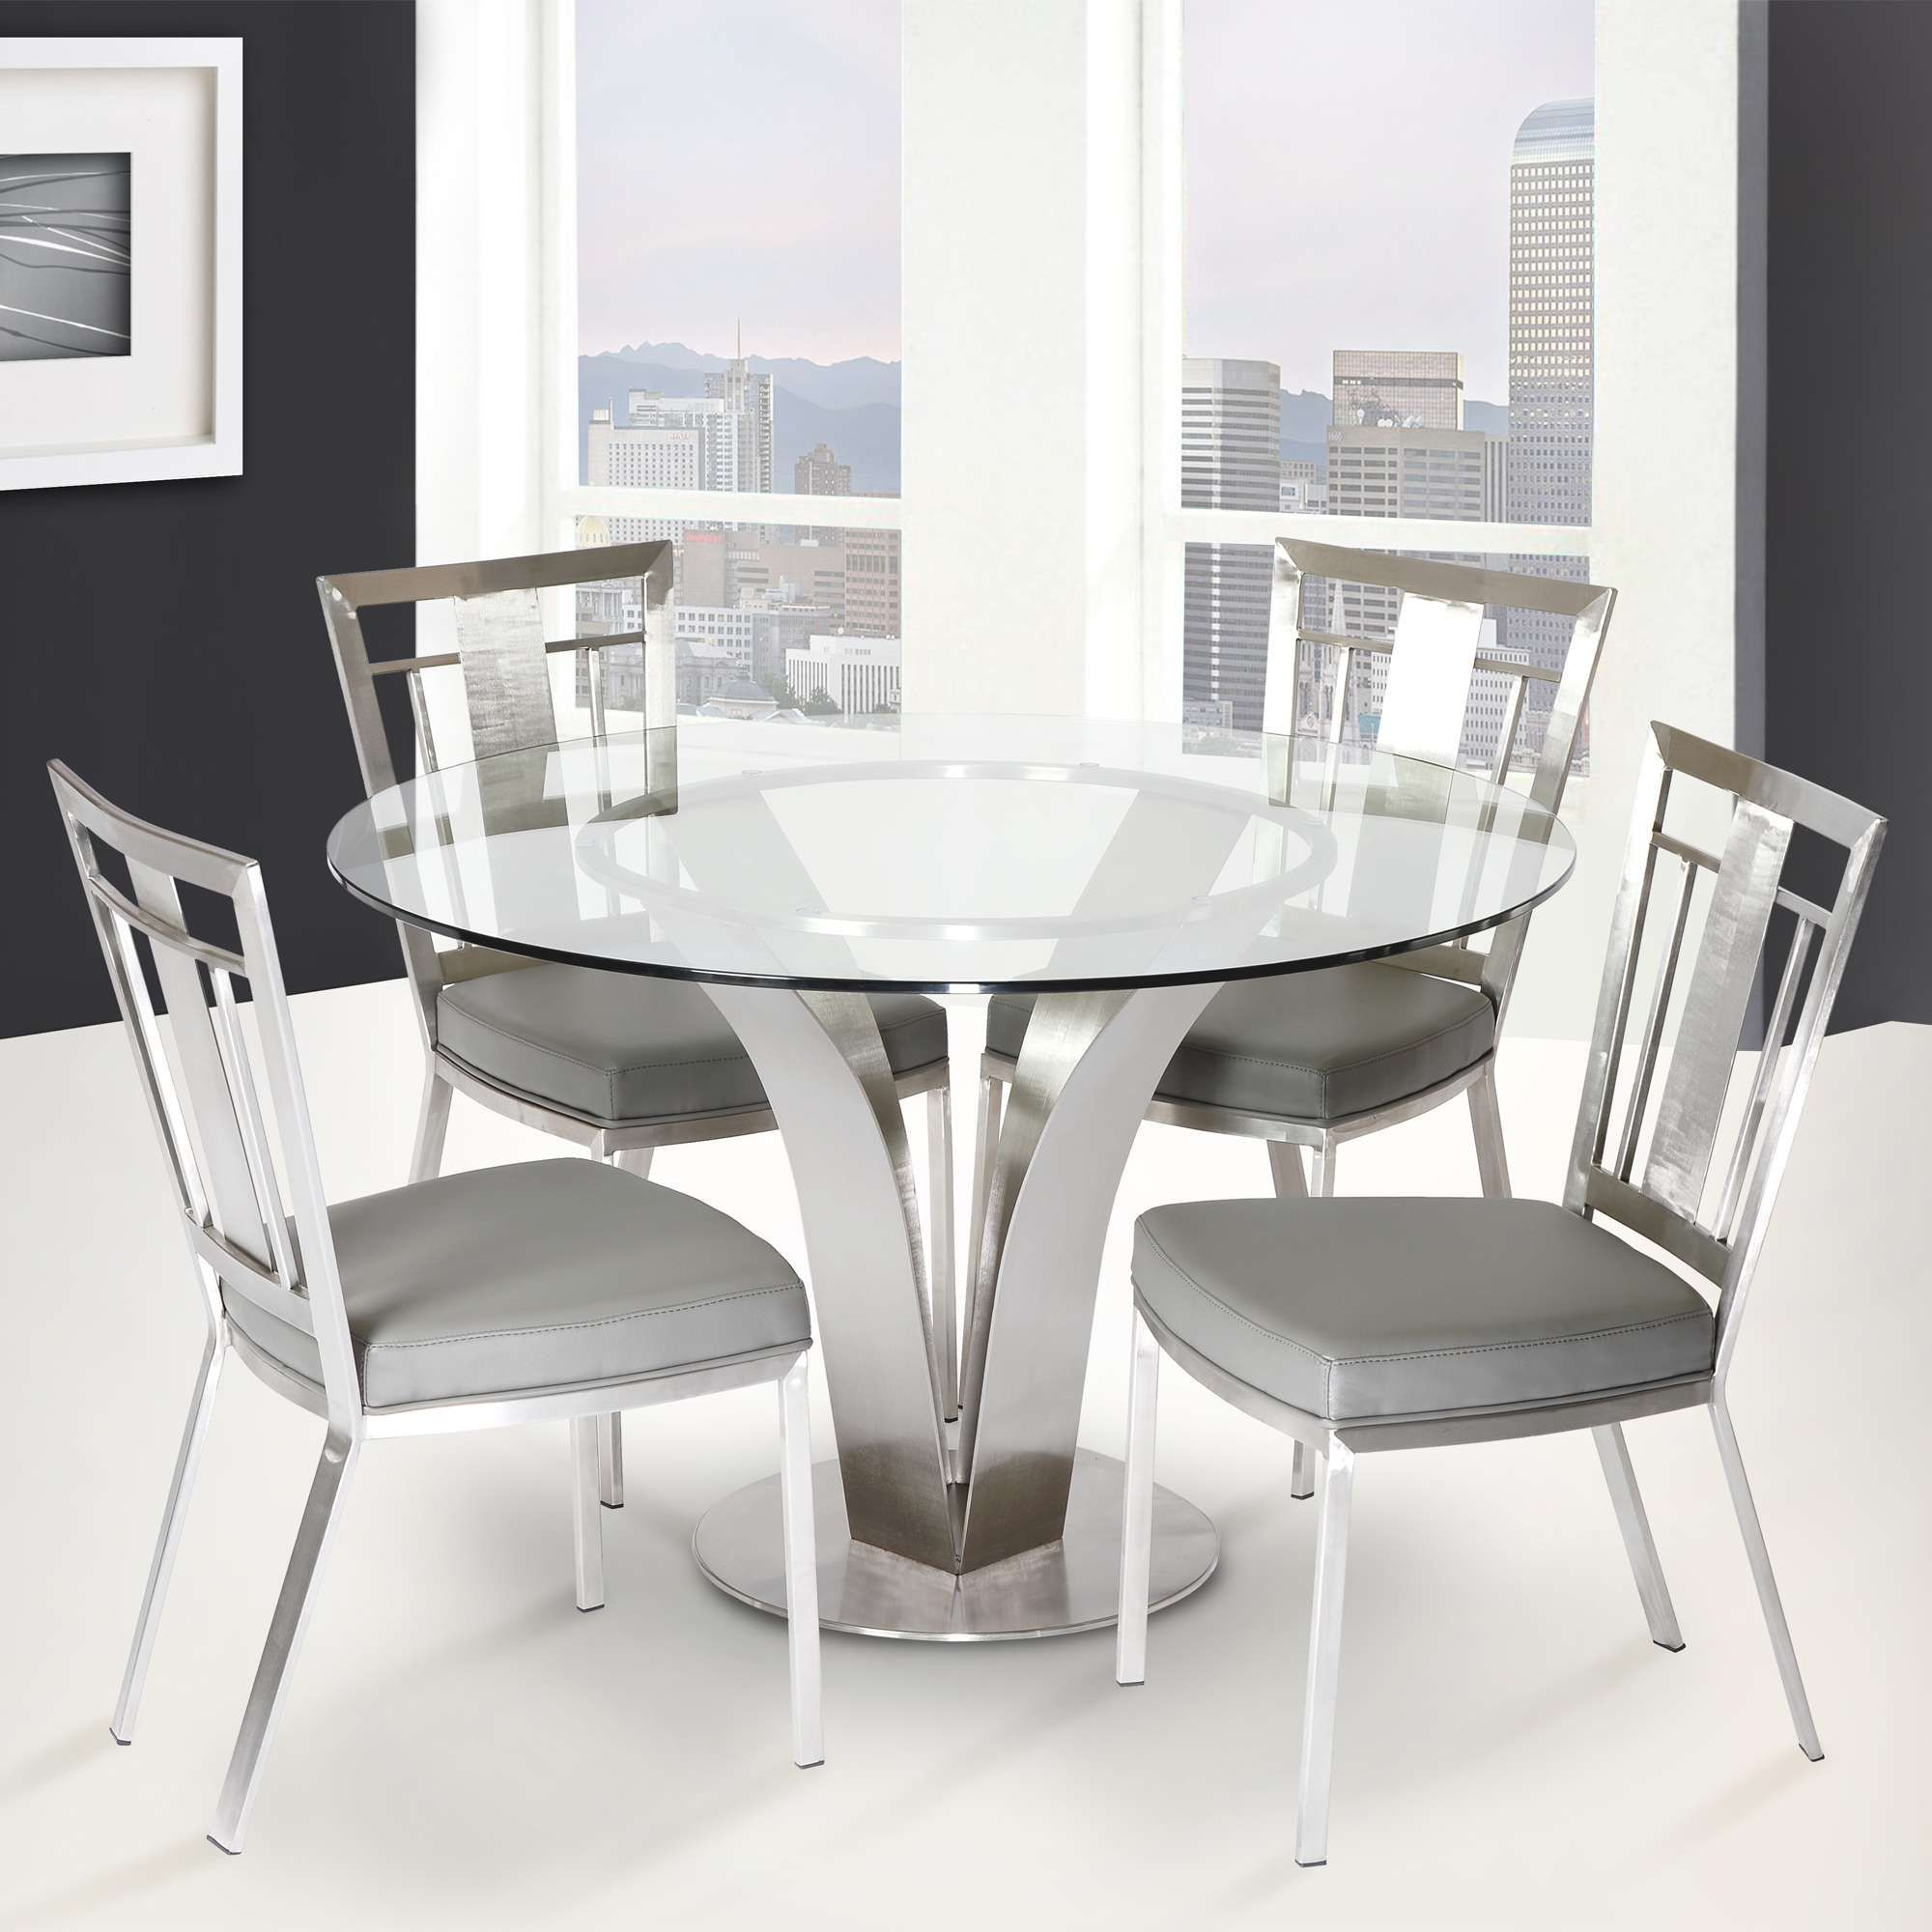 Armen Living Cleo Gray and Stainless 5 Piece Dining Room ...